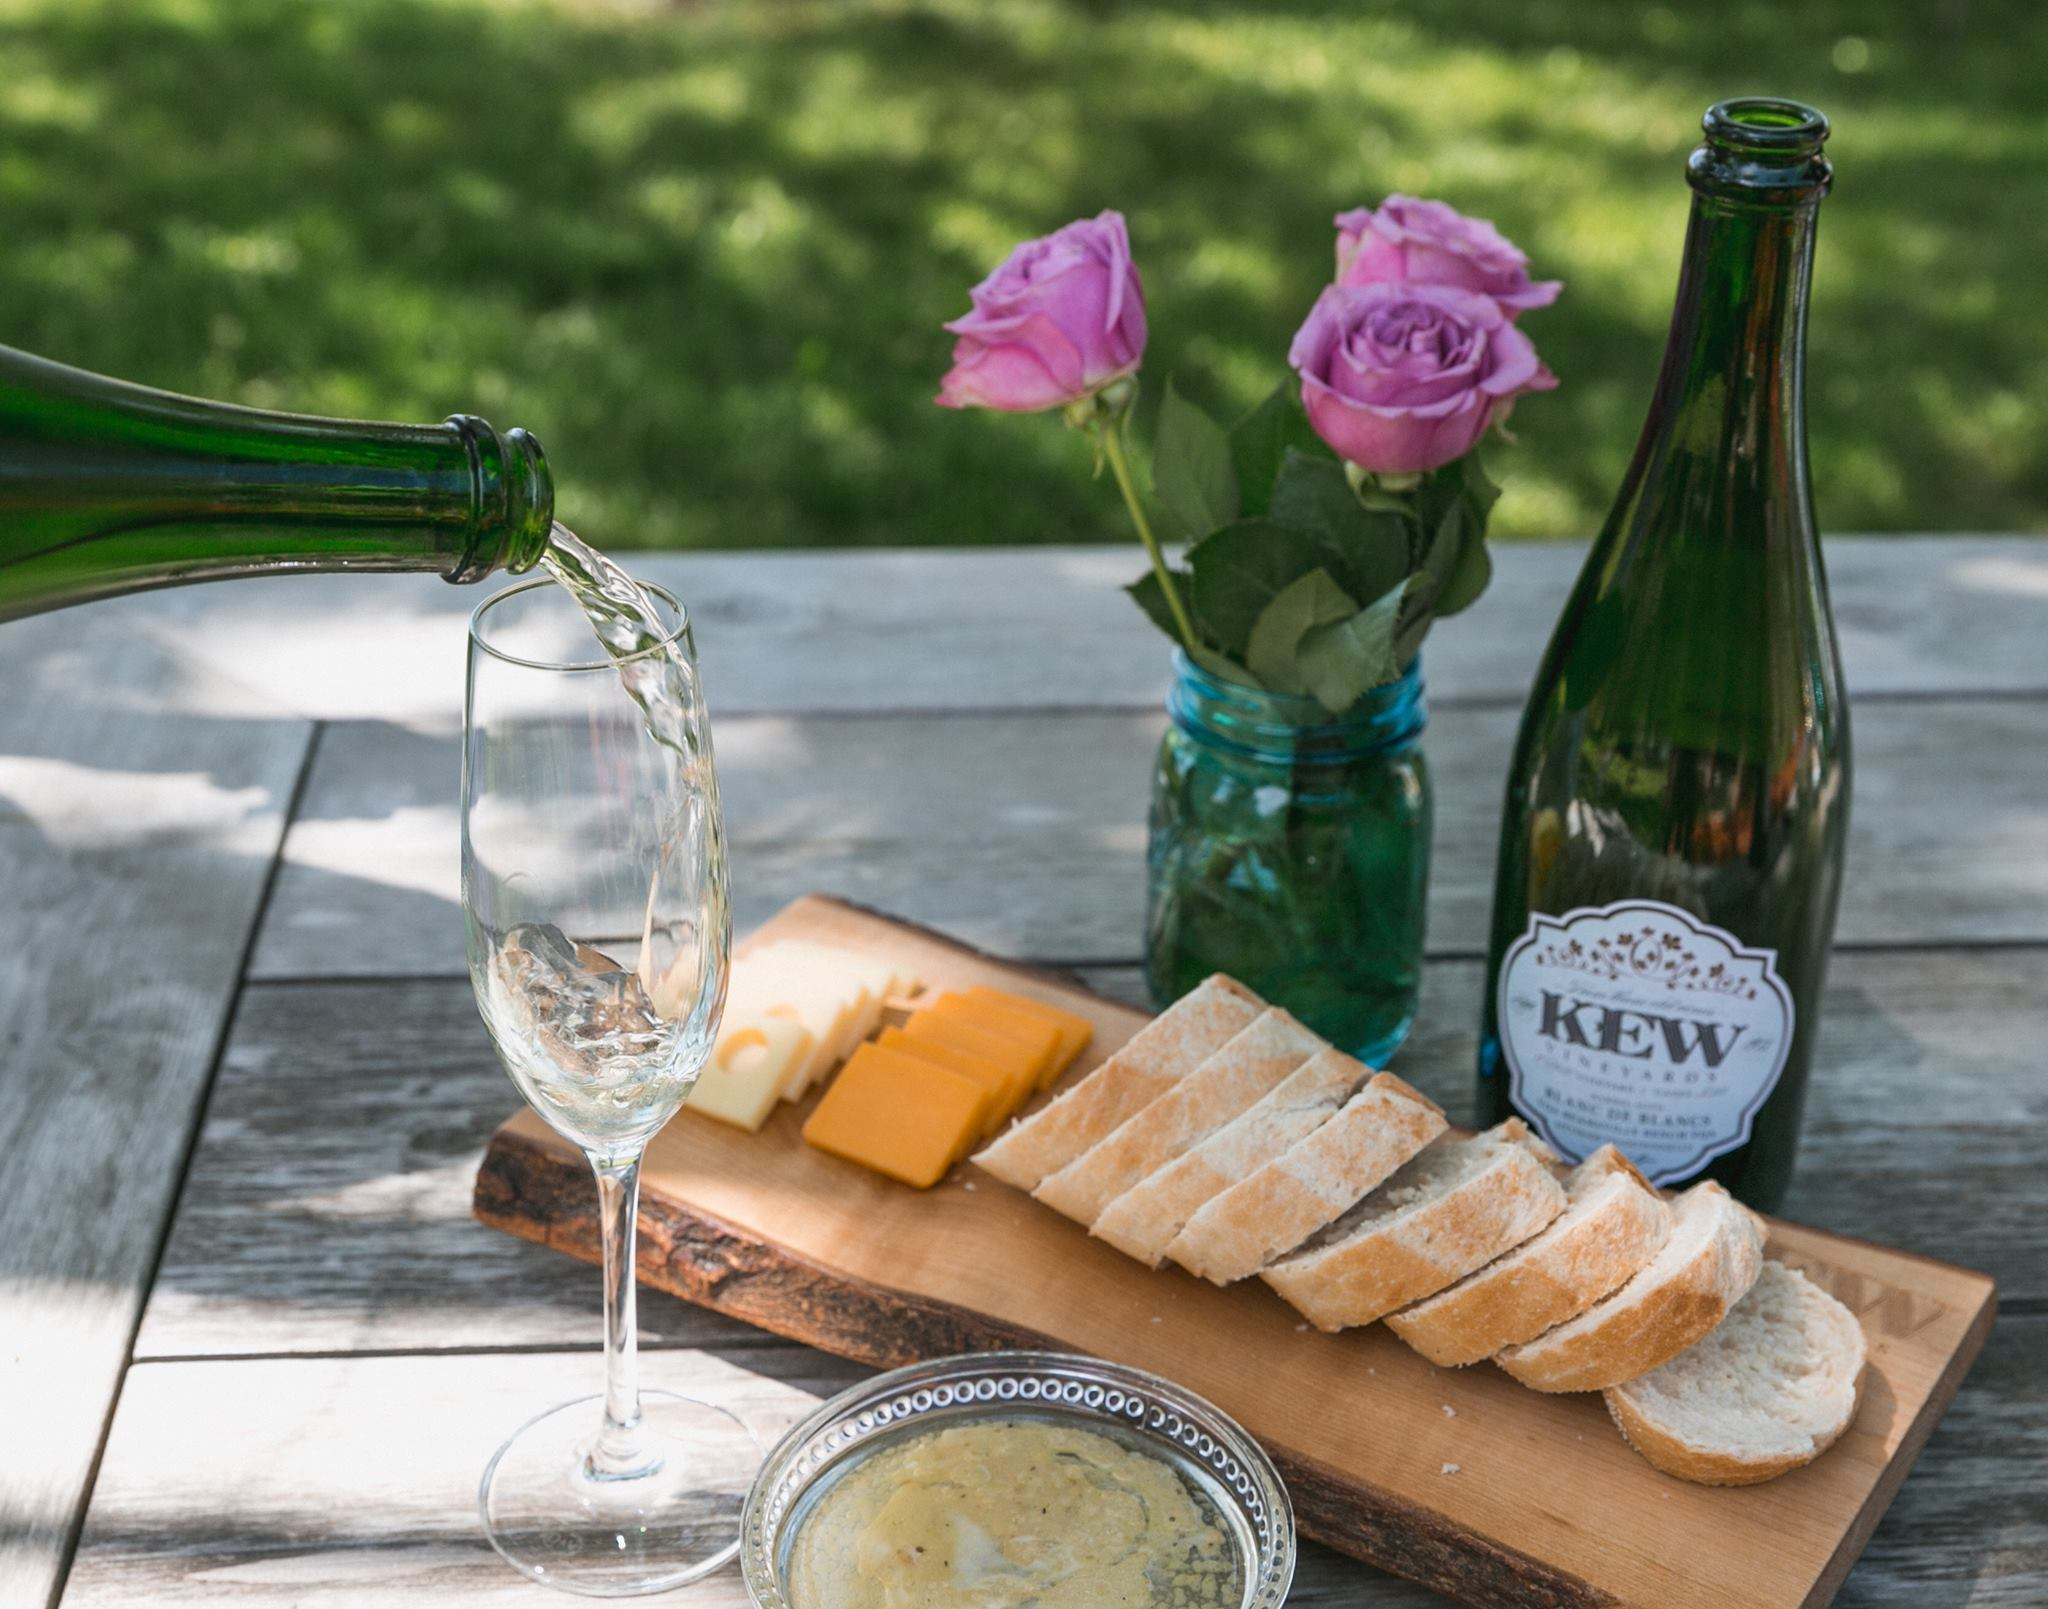 Visit Kew Winery by renting a charter bus.